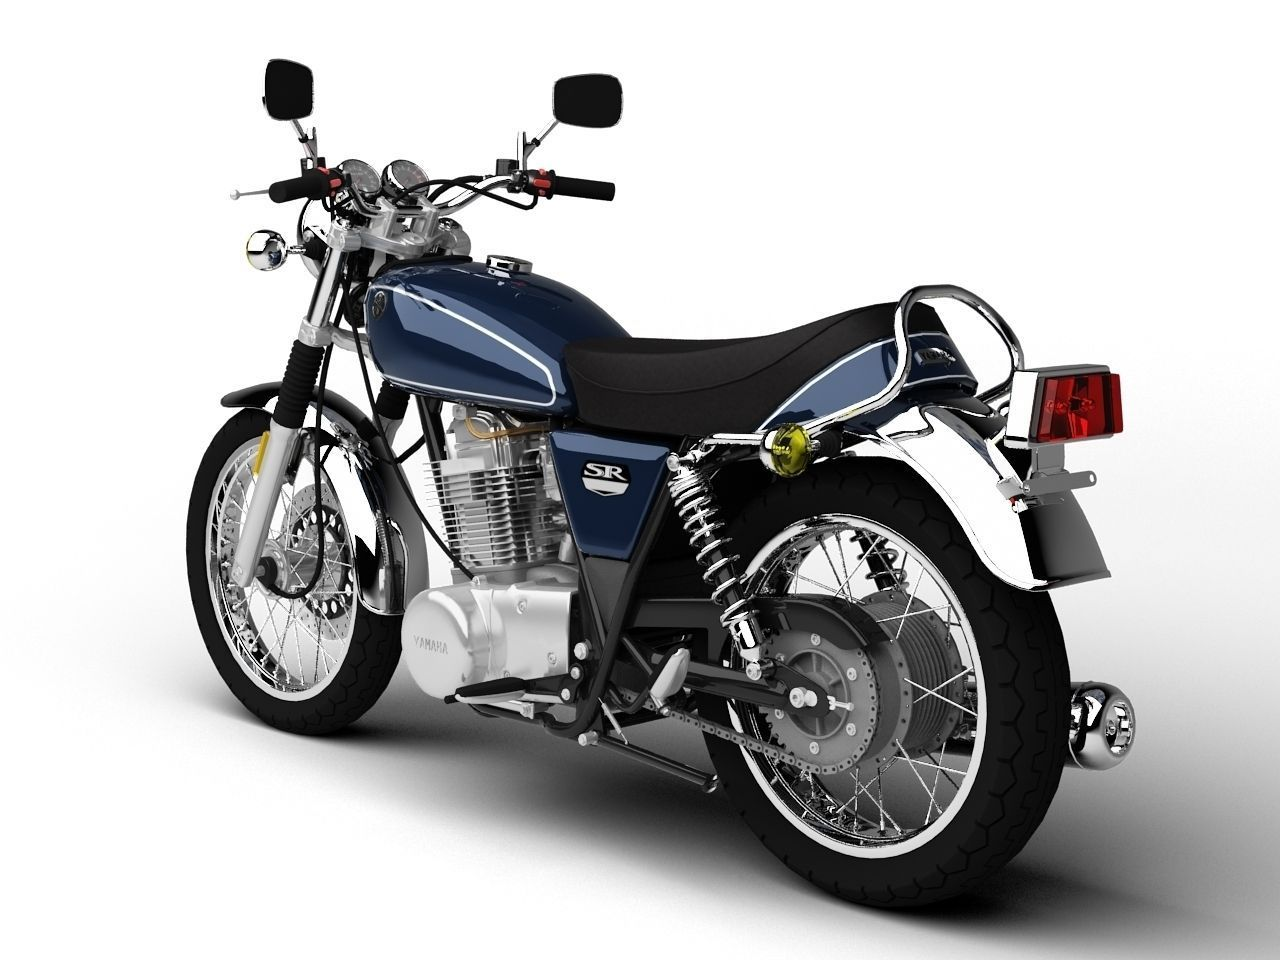 Yamaha sr400 2015 3d model max obj 3ds fbx c4d dxf for 2015 yamaha motorcycle models